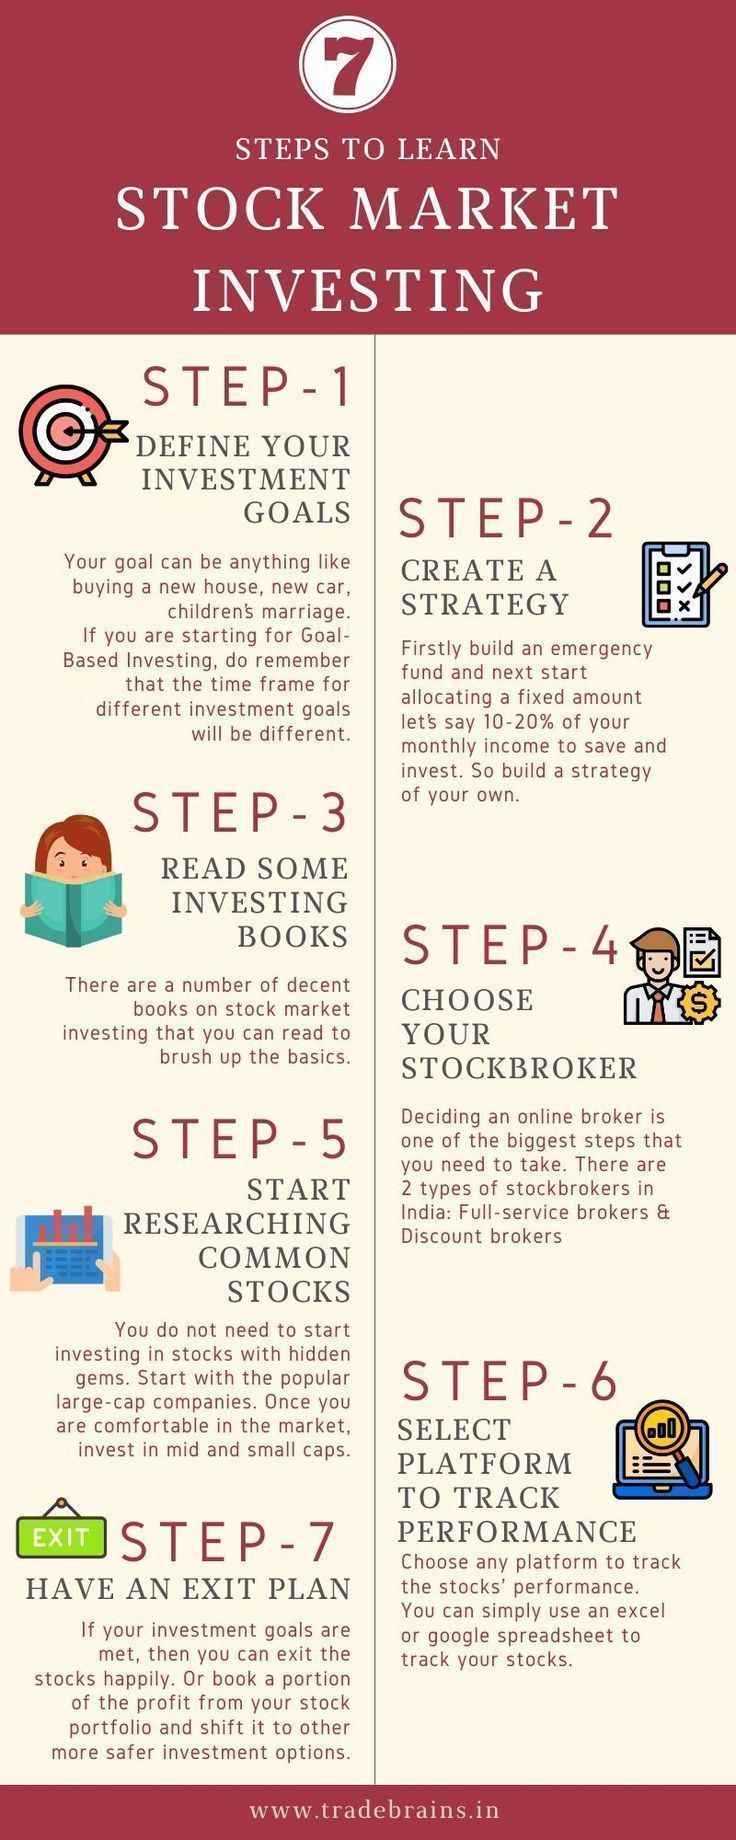 How To Invest In Share Market A Complete Beginner S Guide In 2020 Stock Market Investing Investing In Shares Stock Market